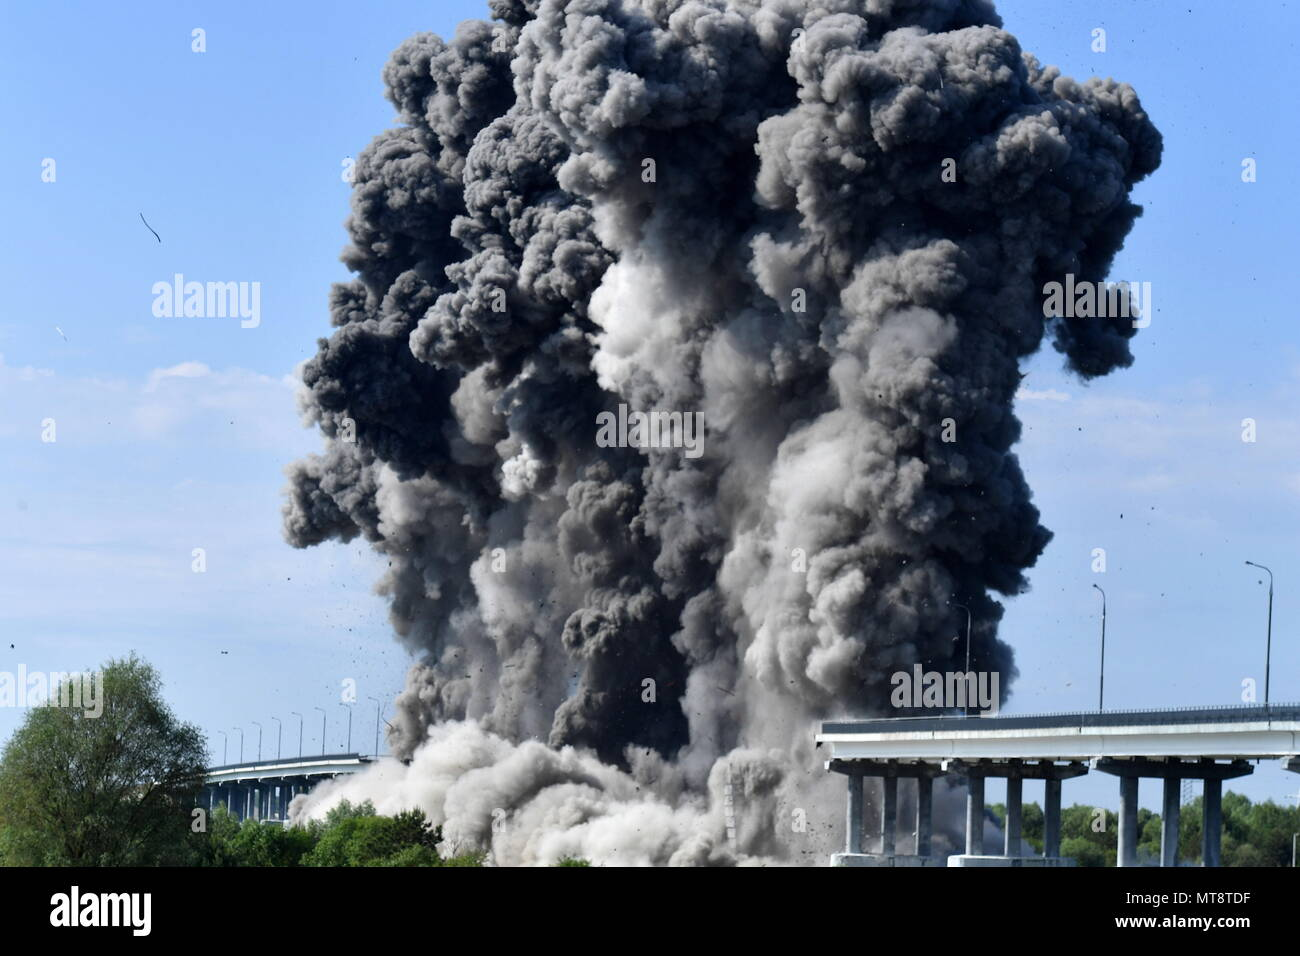 Controlled Explosion Stockfotos & Controlled Explosion Bilder - Alamy